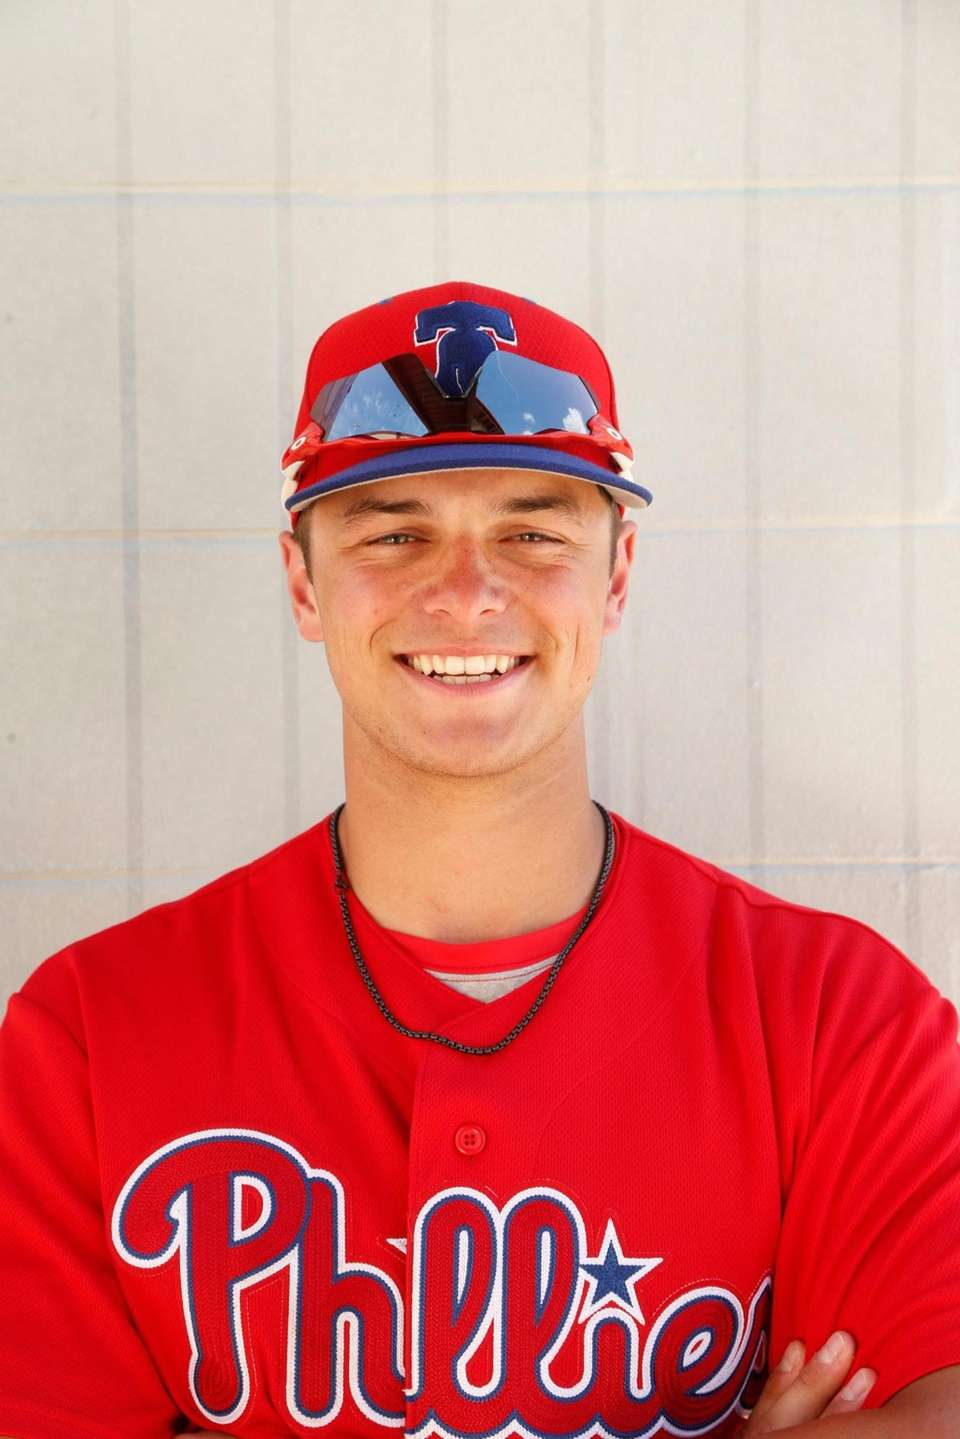 Philadelphia Phillies prospect Logan O'Hoppe poses for a